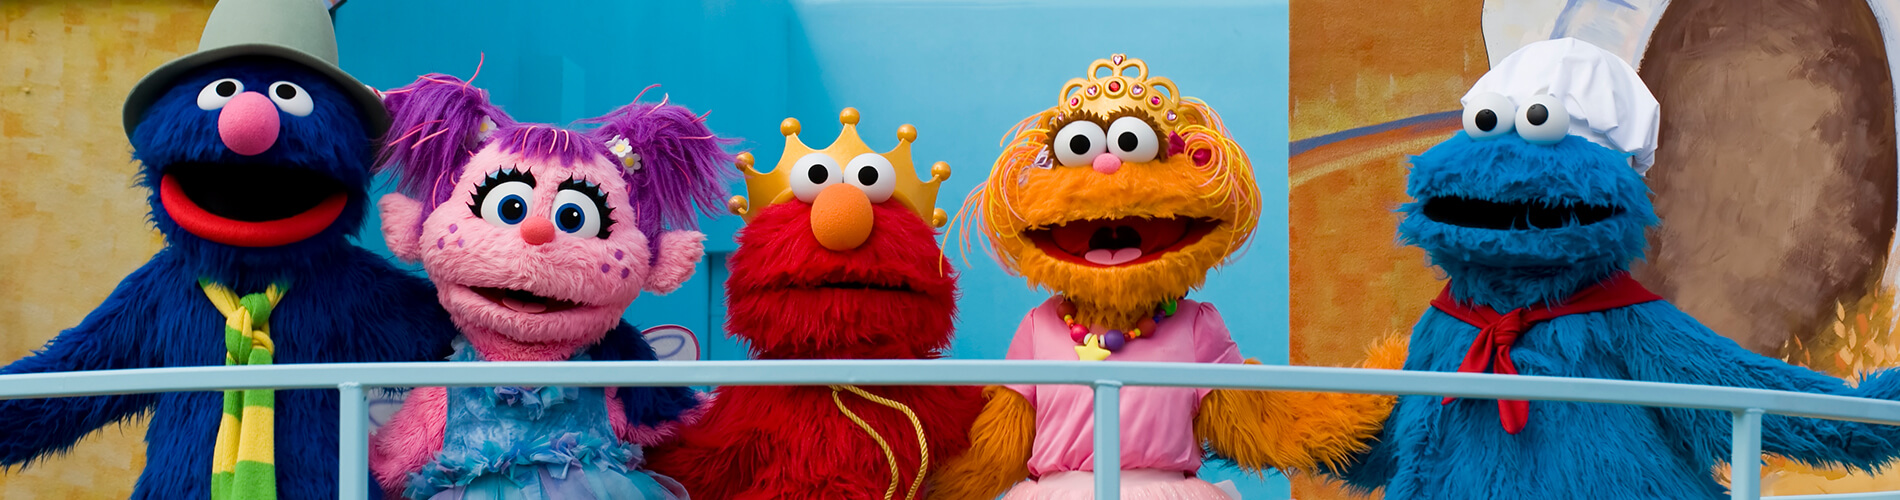 Sunny Days - Sesame Street Characters